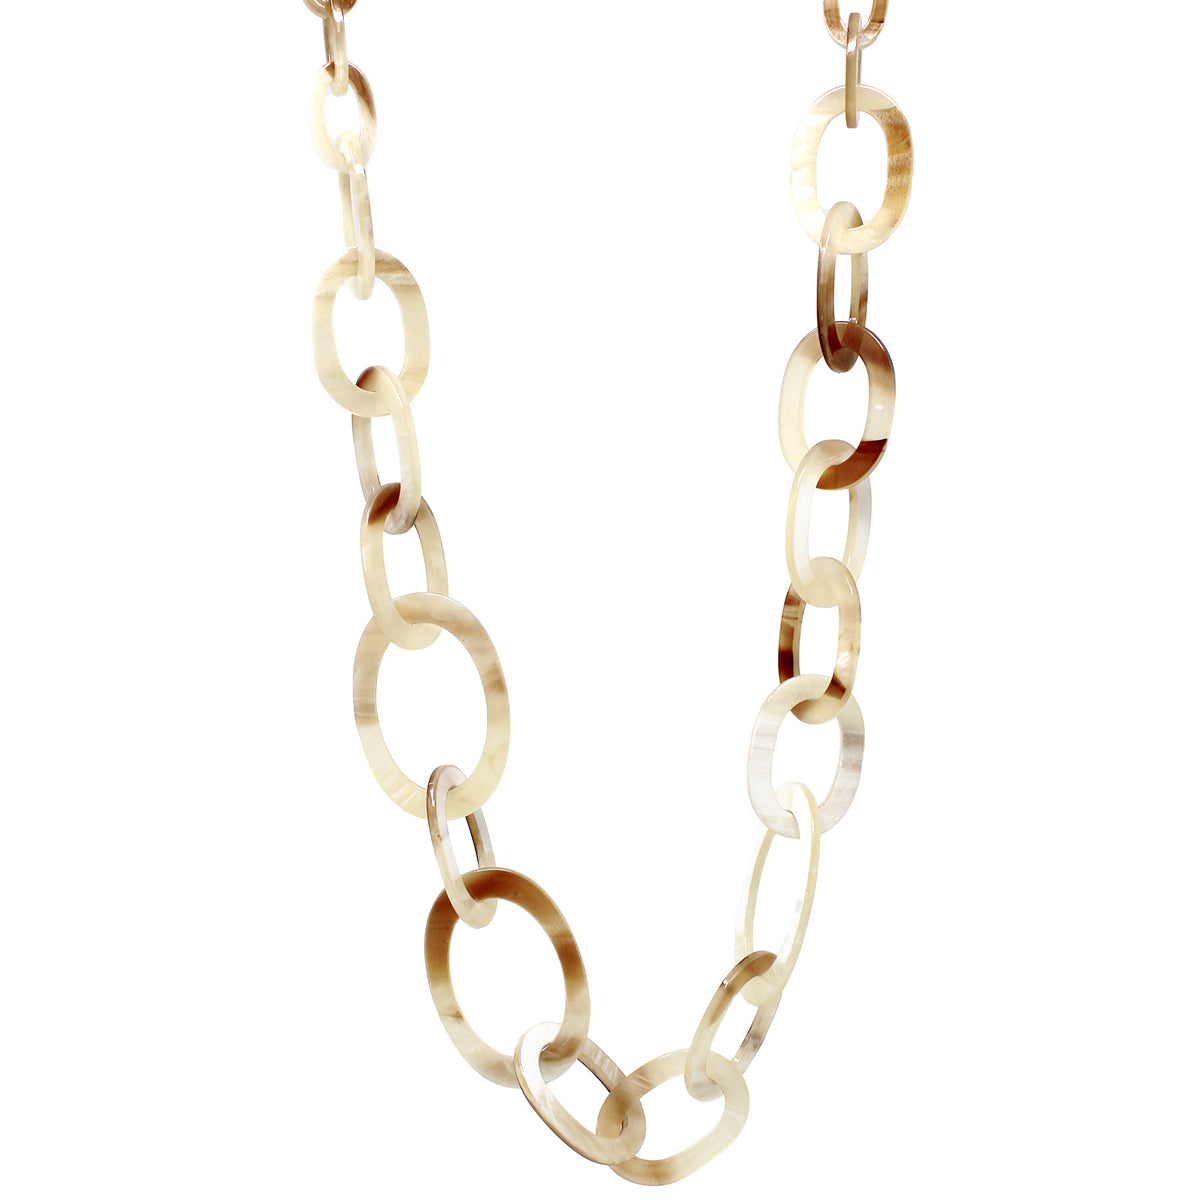 Textured Oval Acetate Linked Long Necklace